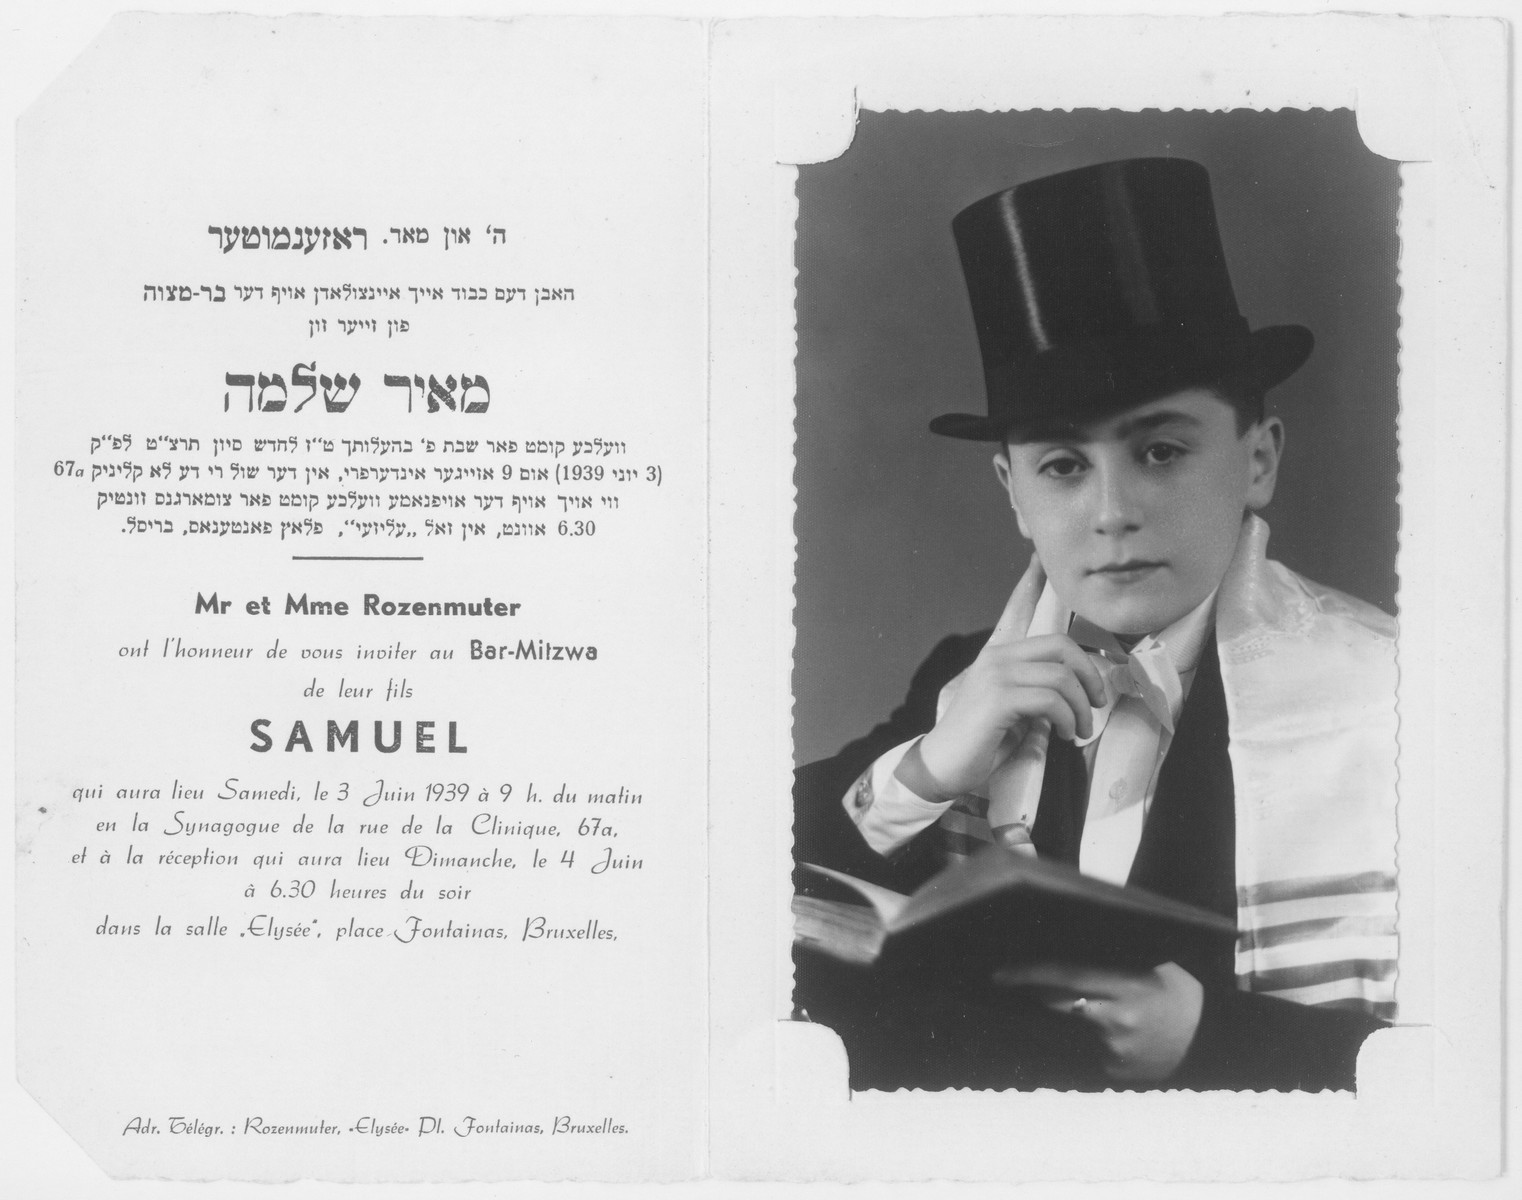 Invitation in Yiddish and French to the bar mitzvah of Samuel (Meir Shlomo) Rozenmuter on June 3, 1939 at the synagogue on the rue de la Clinique in Brussels, Belgium